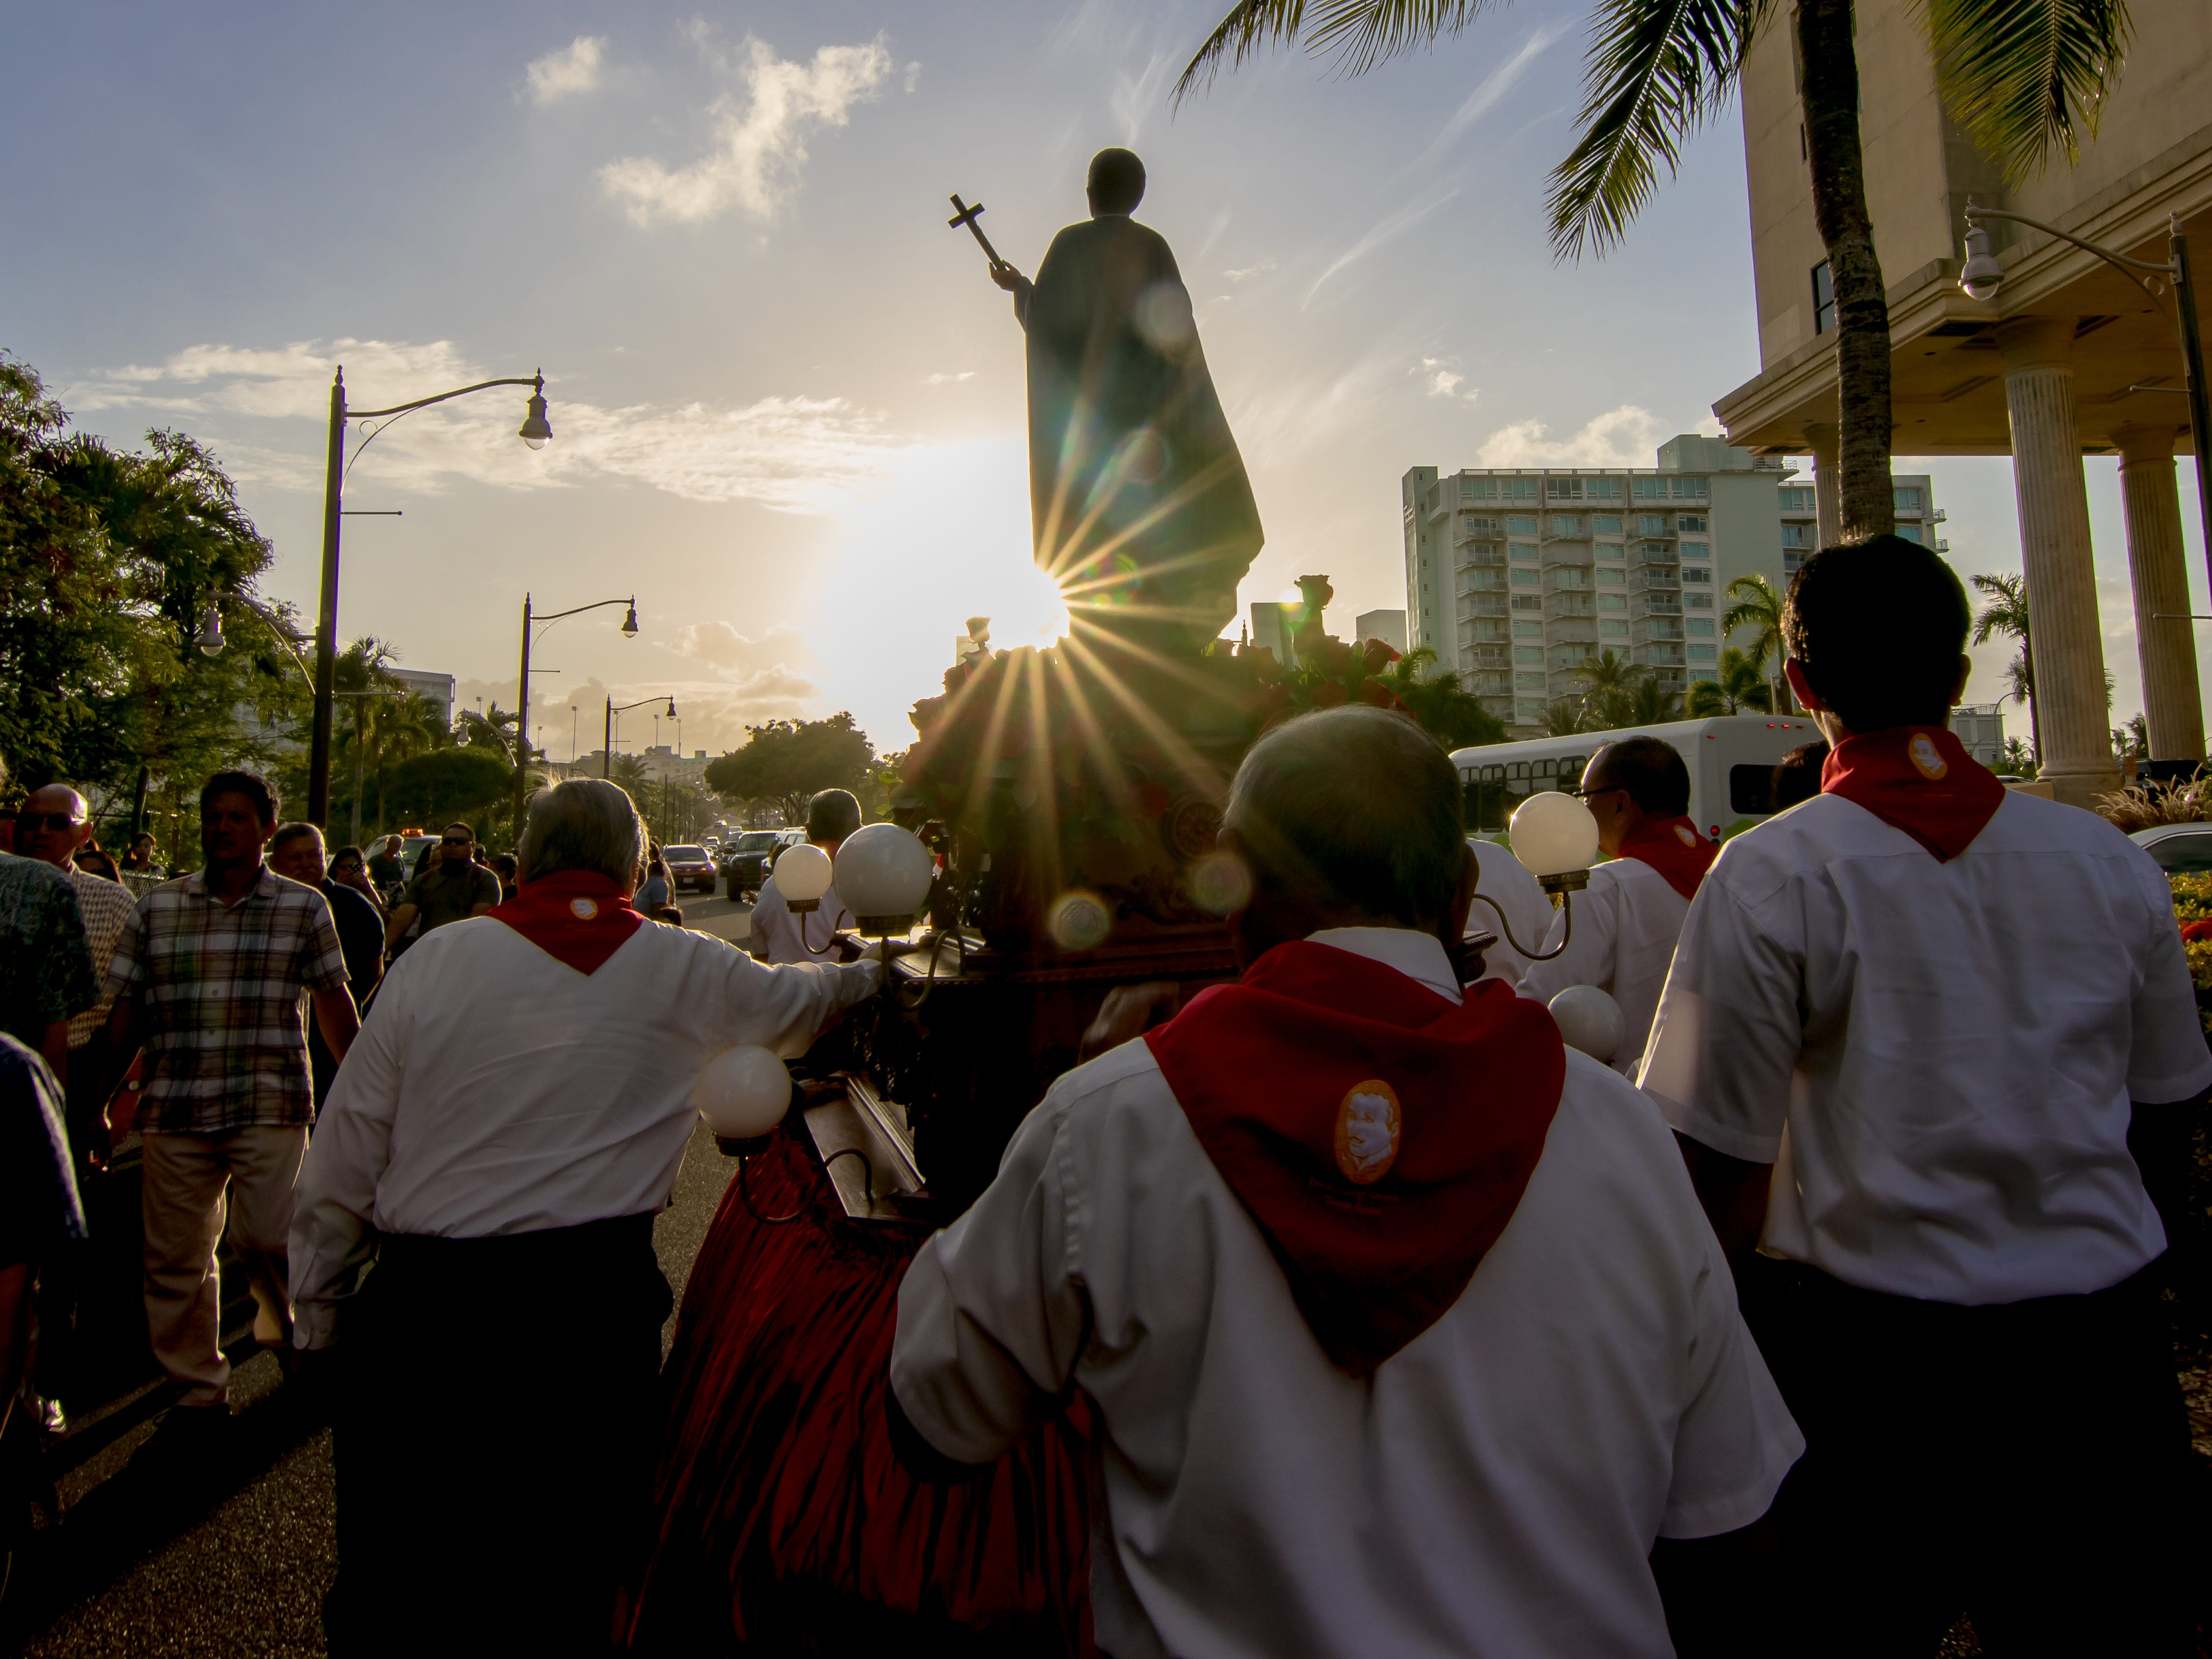 Parishioners in Tumon and other Catholics participate in a procession of Blessed Diego Luis de San Vitores during the Celebration of Feast of San Vitores in Tumon on Jan. 12.